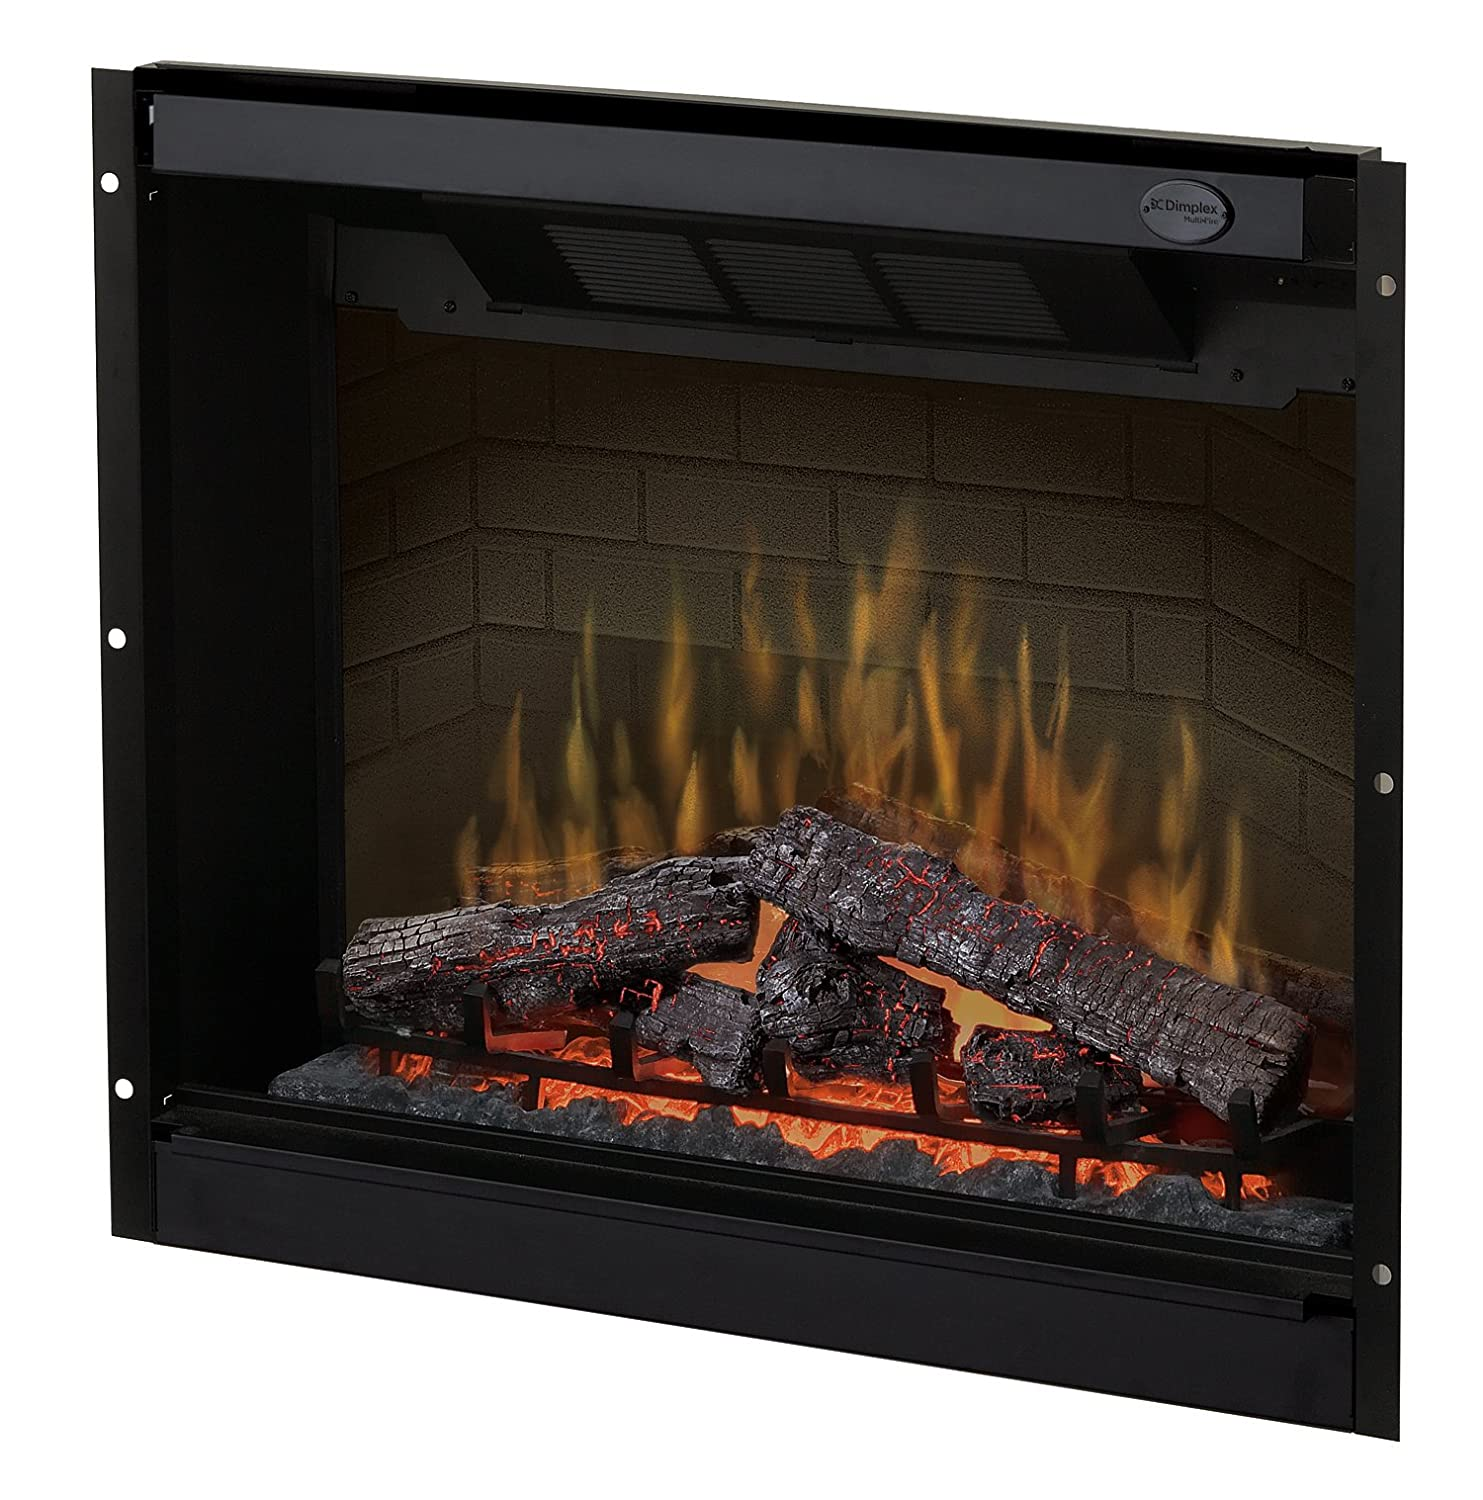 Dimplex DF3215 Multi-Fire 32-Inch Plug-In Firebox, Black